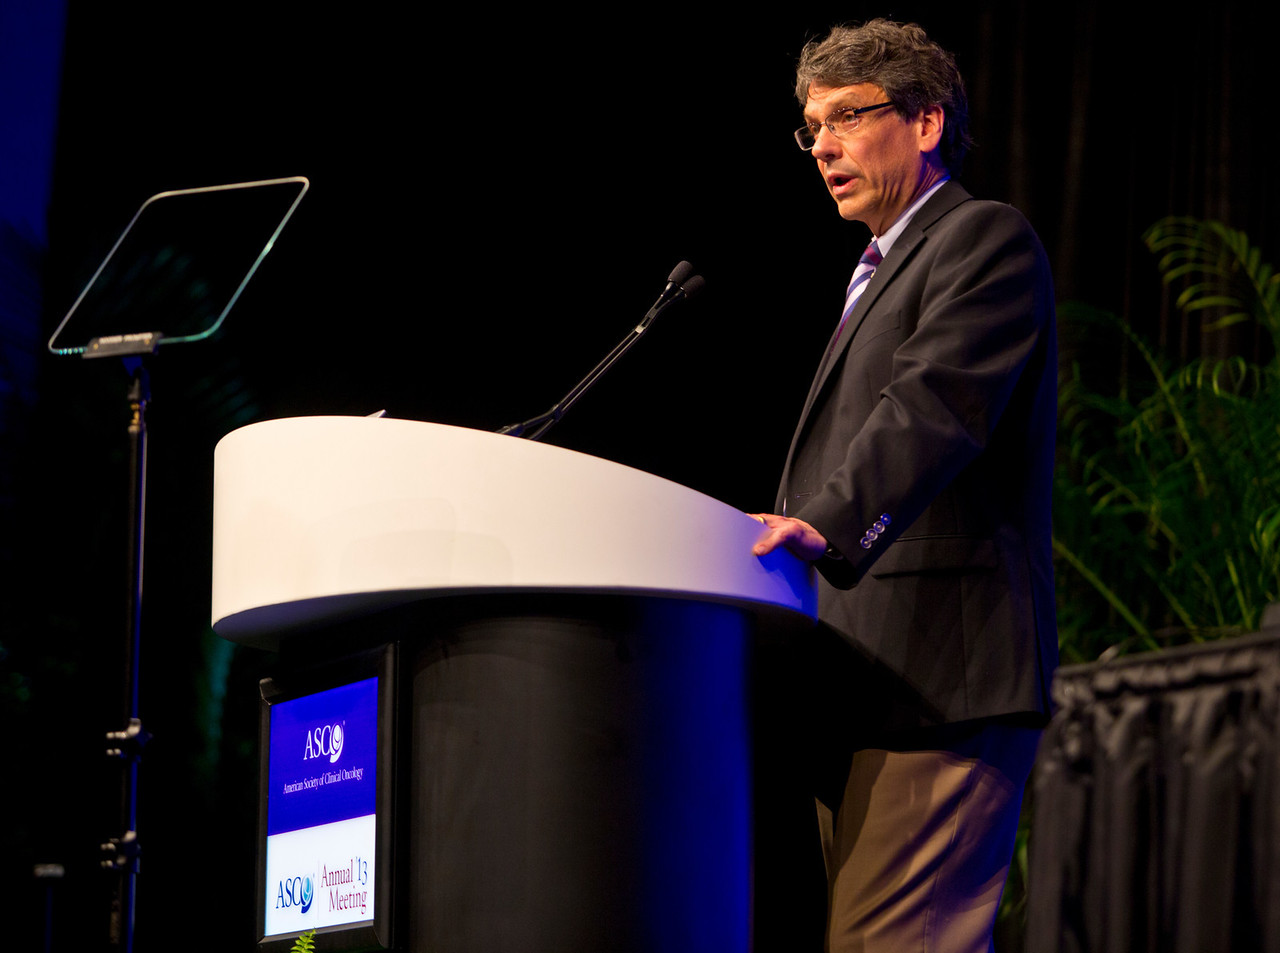 Chicago, IL - ASCO 2013 Annual Meeting: - Charles E. Geyer during Ed Ses: Pushing the Limits of Upfront Care and Drug Development: Neoadjuvant Opportunities in Breast Cancer at the American Society for Clinical Oncology (ASCO) Annual Meeting here today, Saturday June 1, 2013.  Over 30,000 physicians, researchers and healthcare professionals from over 100 countries are attending the meeting which is being held at the McCormick Convention center and features the latest cancer research in the areas of basic and clinical science. Photo by © ASCO/Rodney White 2013 Technical Questions: todd@toddbuchanan.com; ASCO Contact: photos@asco.org